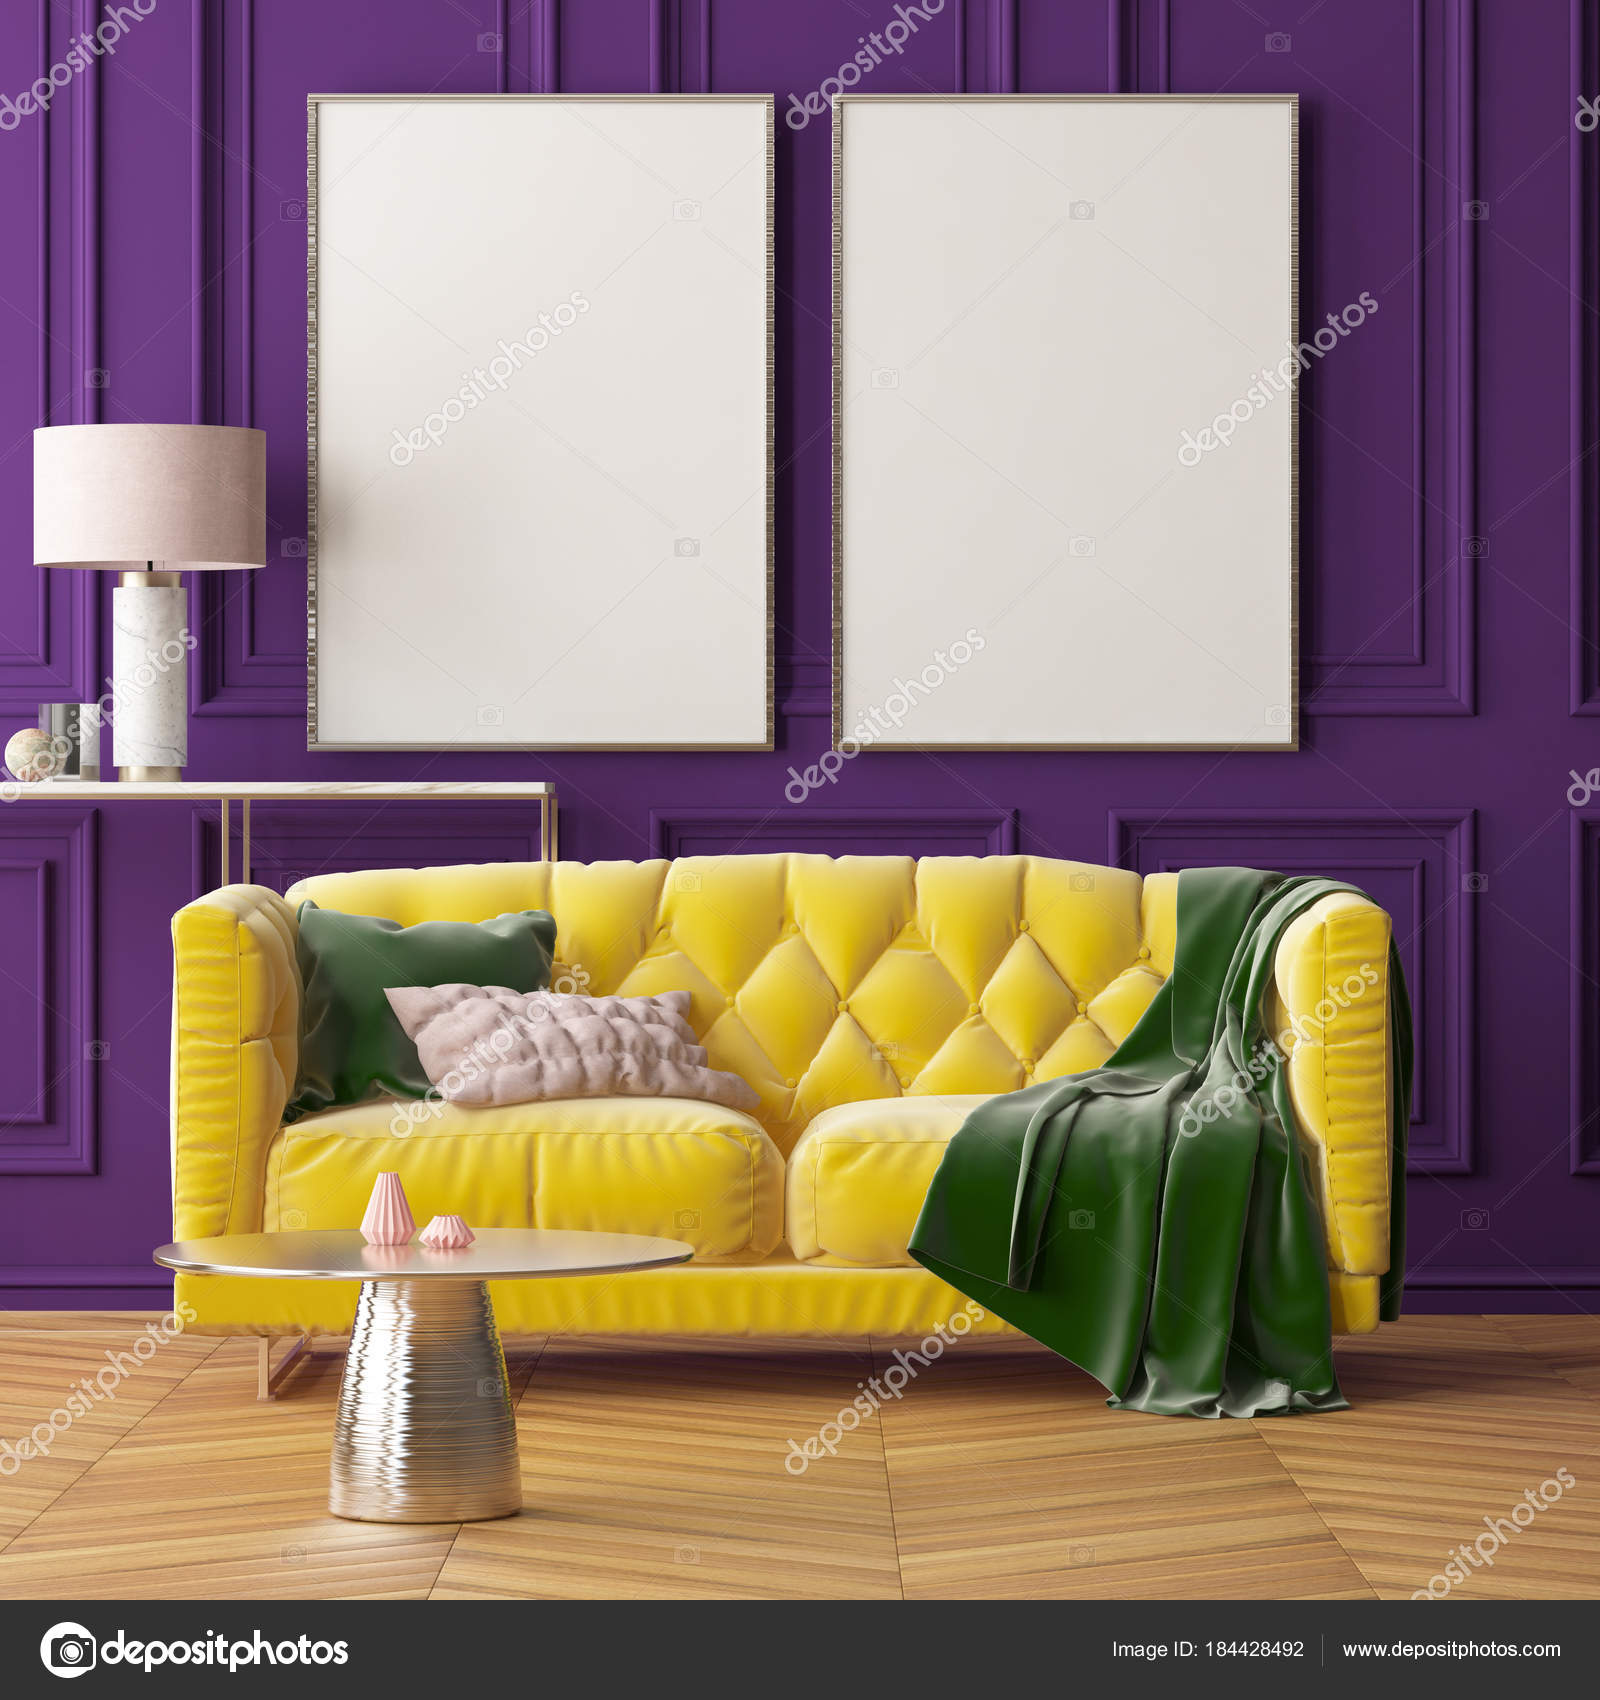 interior living room purple wall yellow sofa table white lamp rh depositphotos com